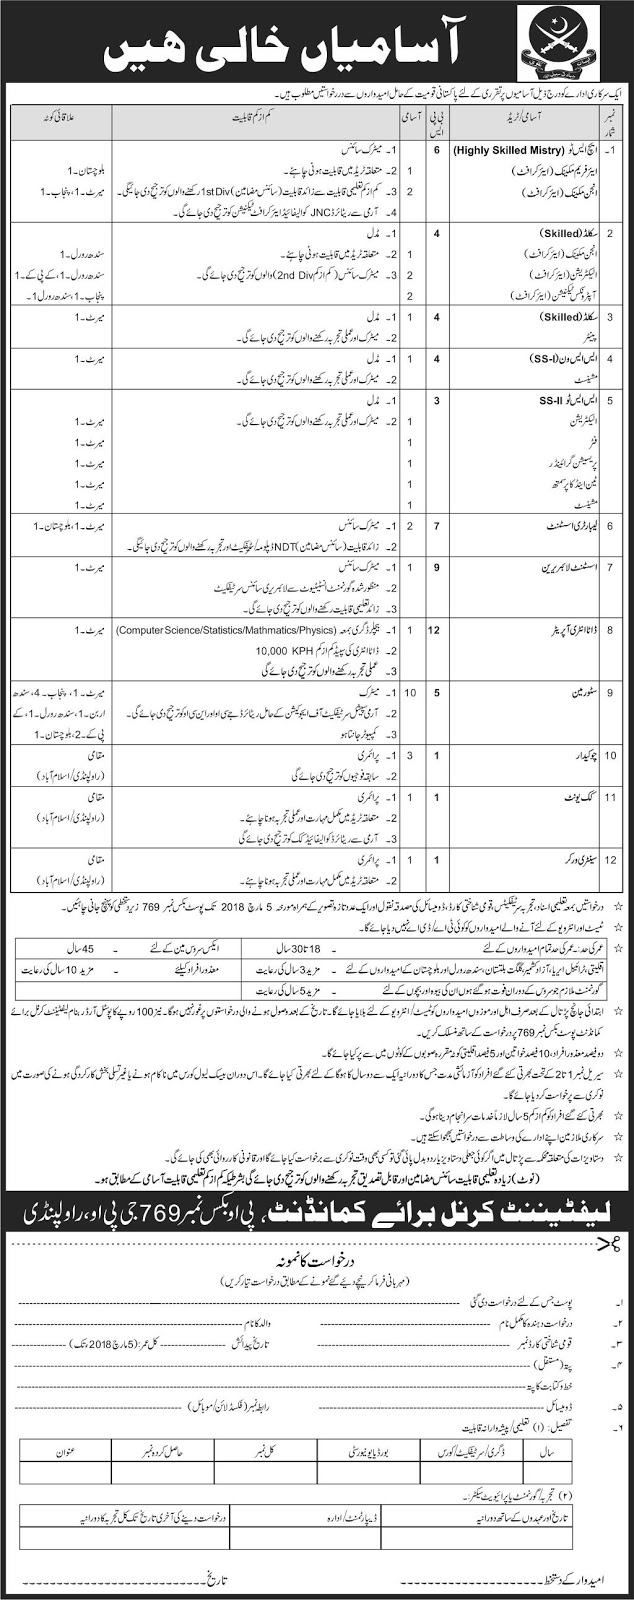 Jobs in Pakistan Army 2018 for Data Entry Operator and others